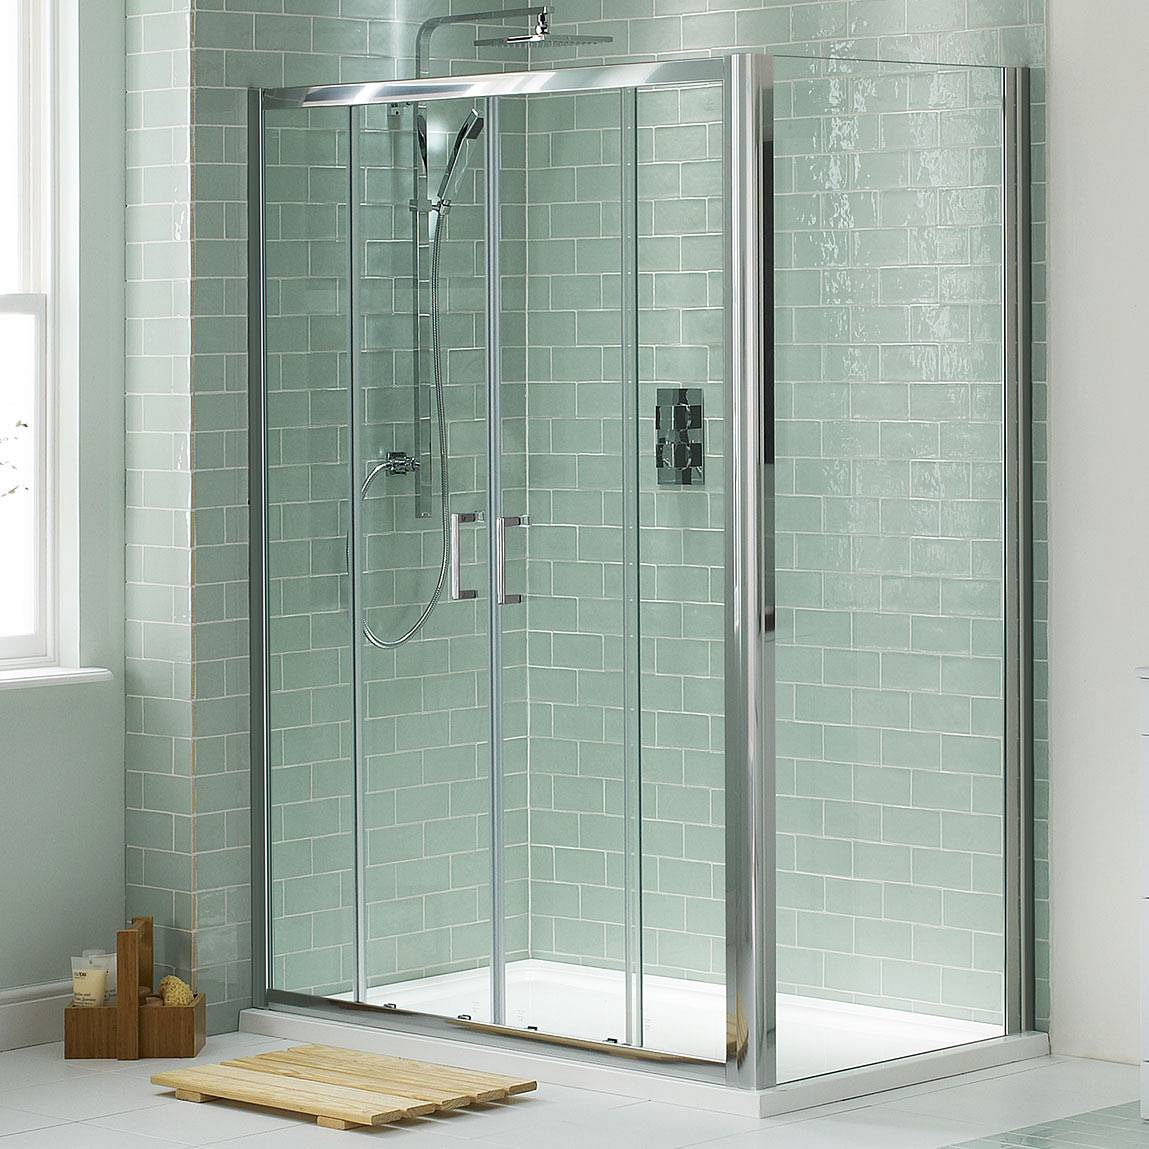 6mm sliding shower enclosure 1400 x 800 for 1400 shower door